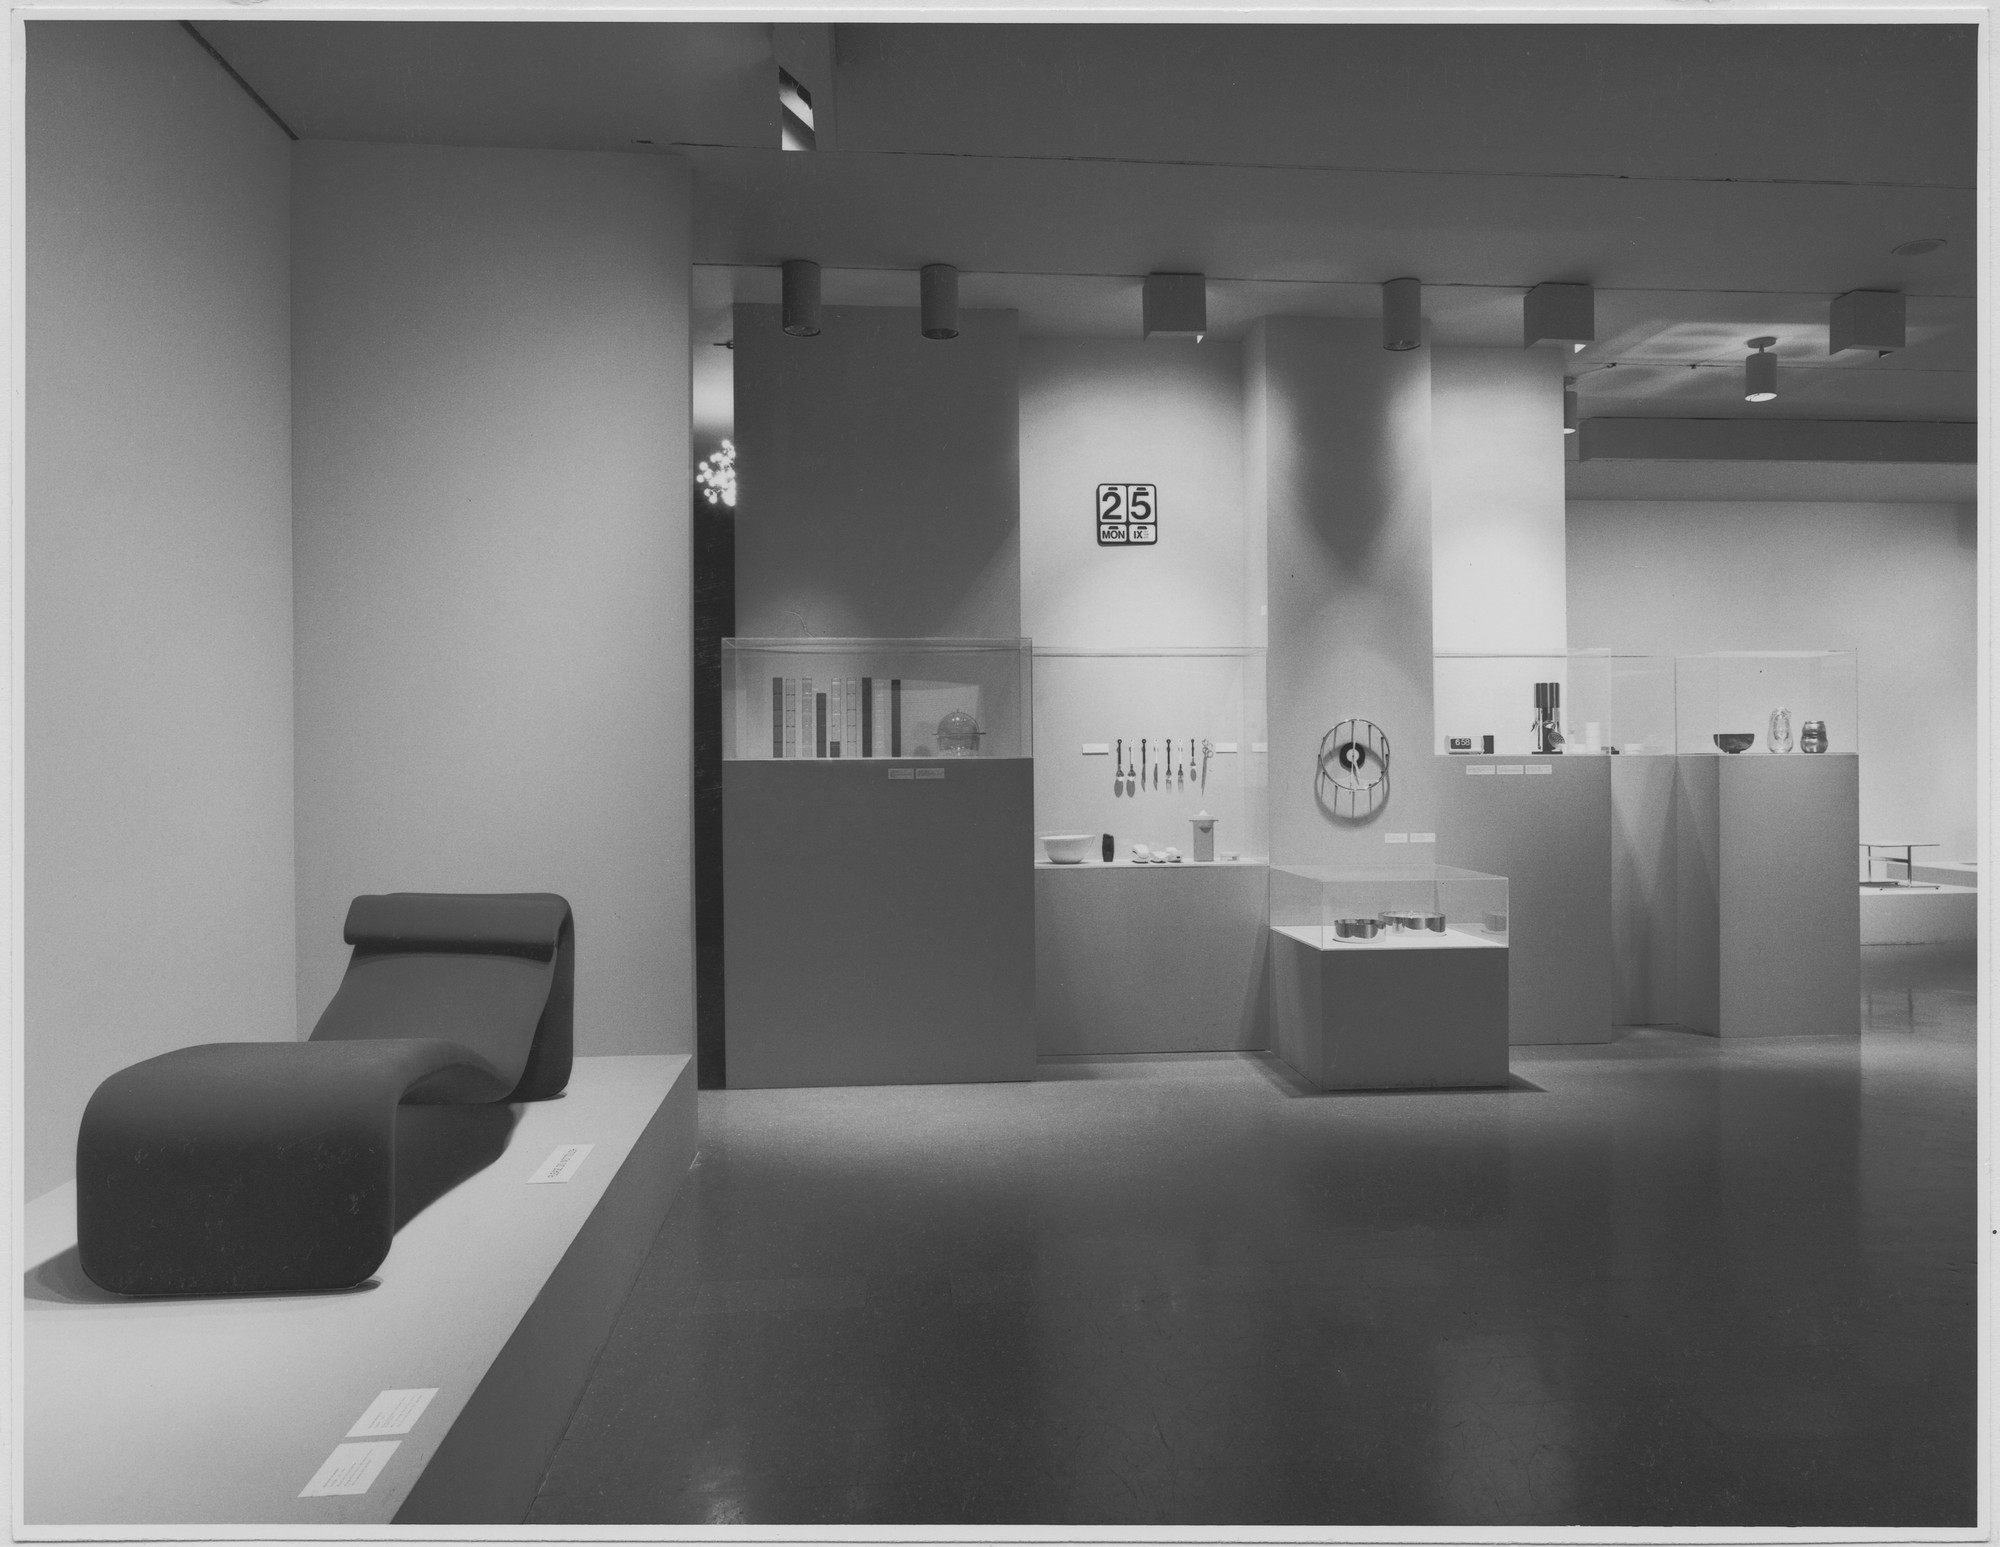 "Installation view of the exhibition, ""Recent Acquisitions:  Design Collection."" September 27, 1967–January 1, 1968. Photographic Archive. The Museum of Modern Art Archives, New York. IN840.1. Photograph by George Cserna."